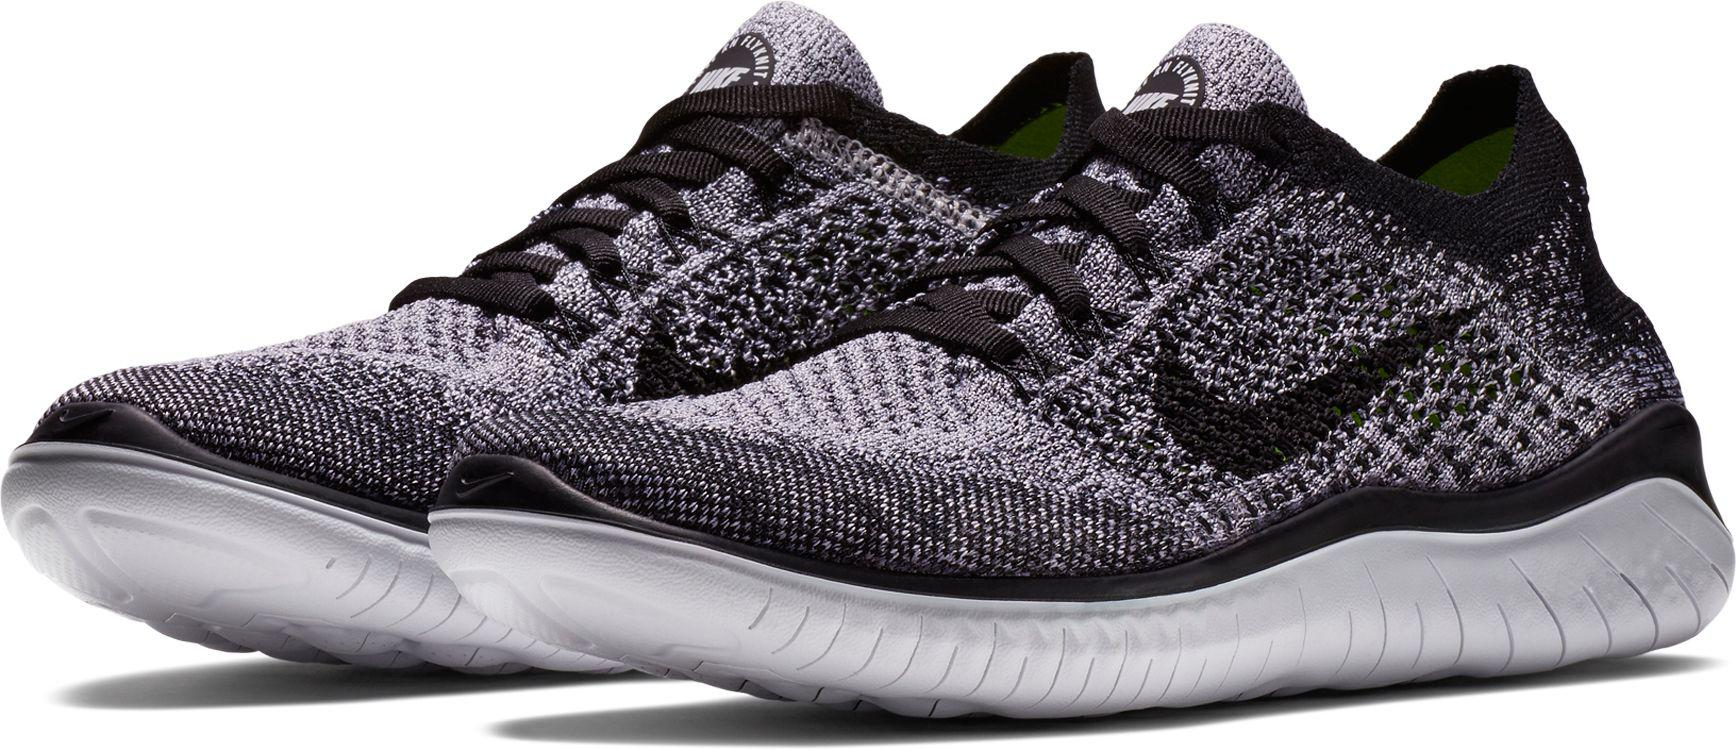 Nike Free Rn Flyknit 2018 Running Shoes in White/Black (Black) - Save 43% -  Lyst